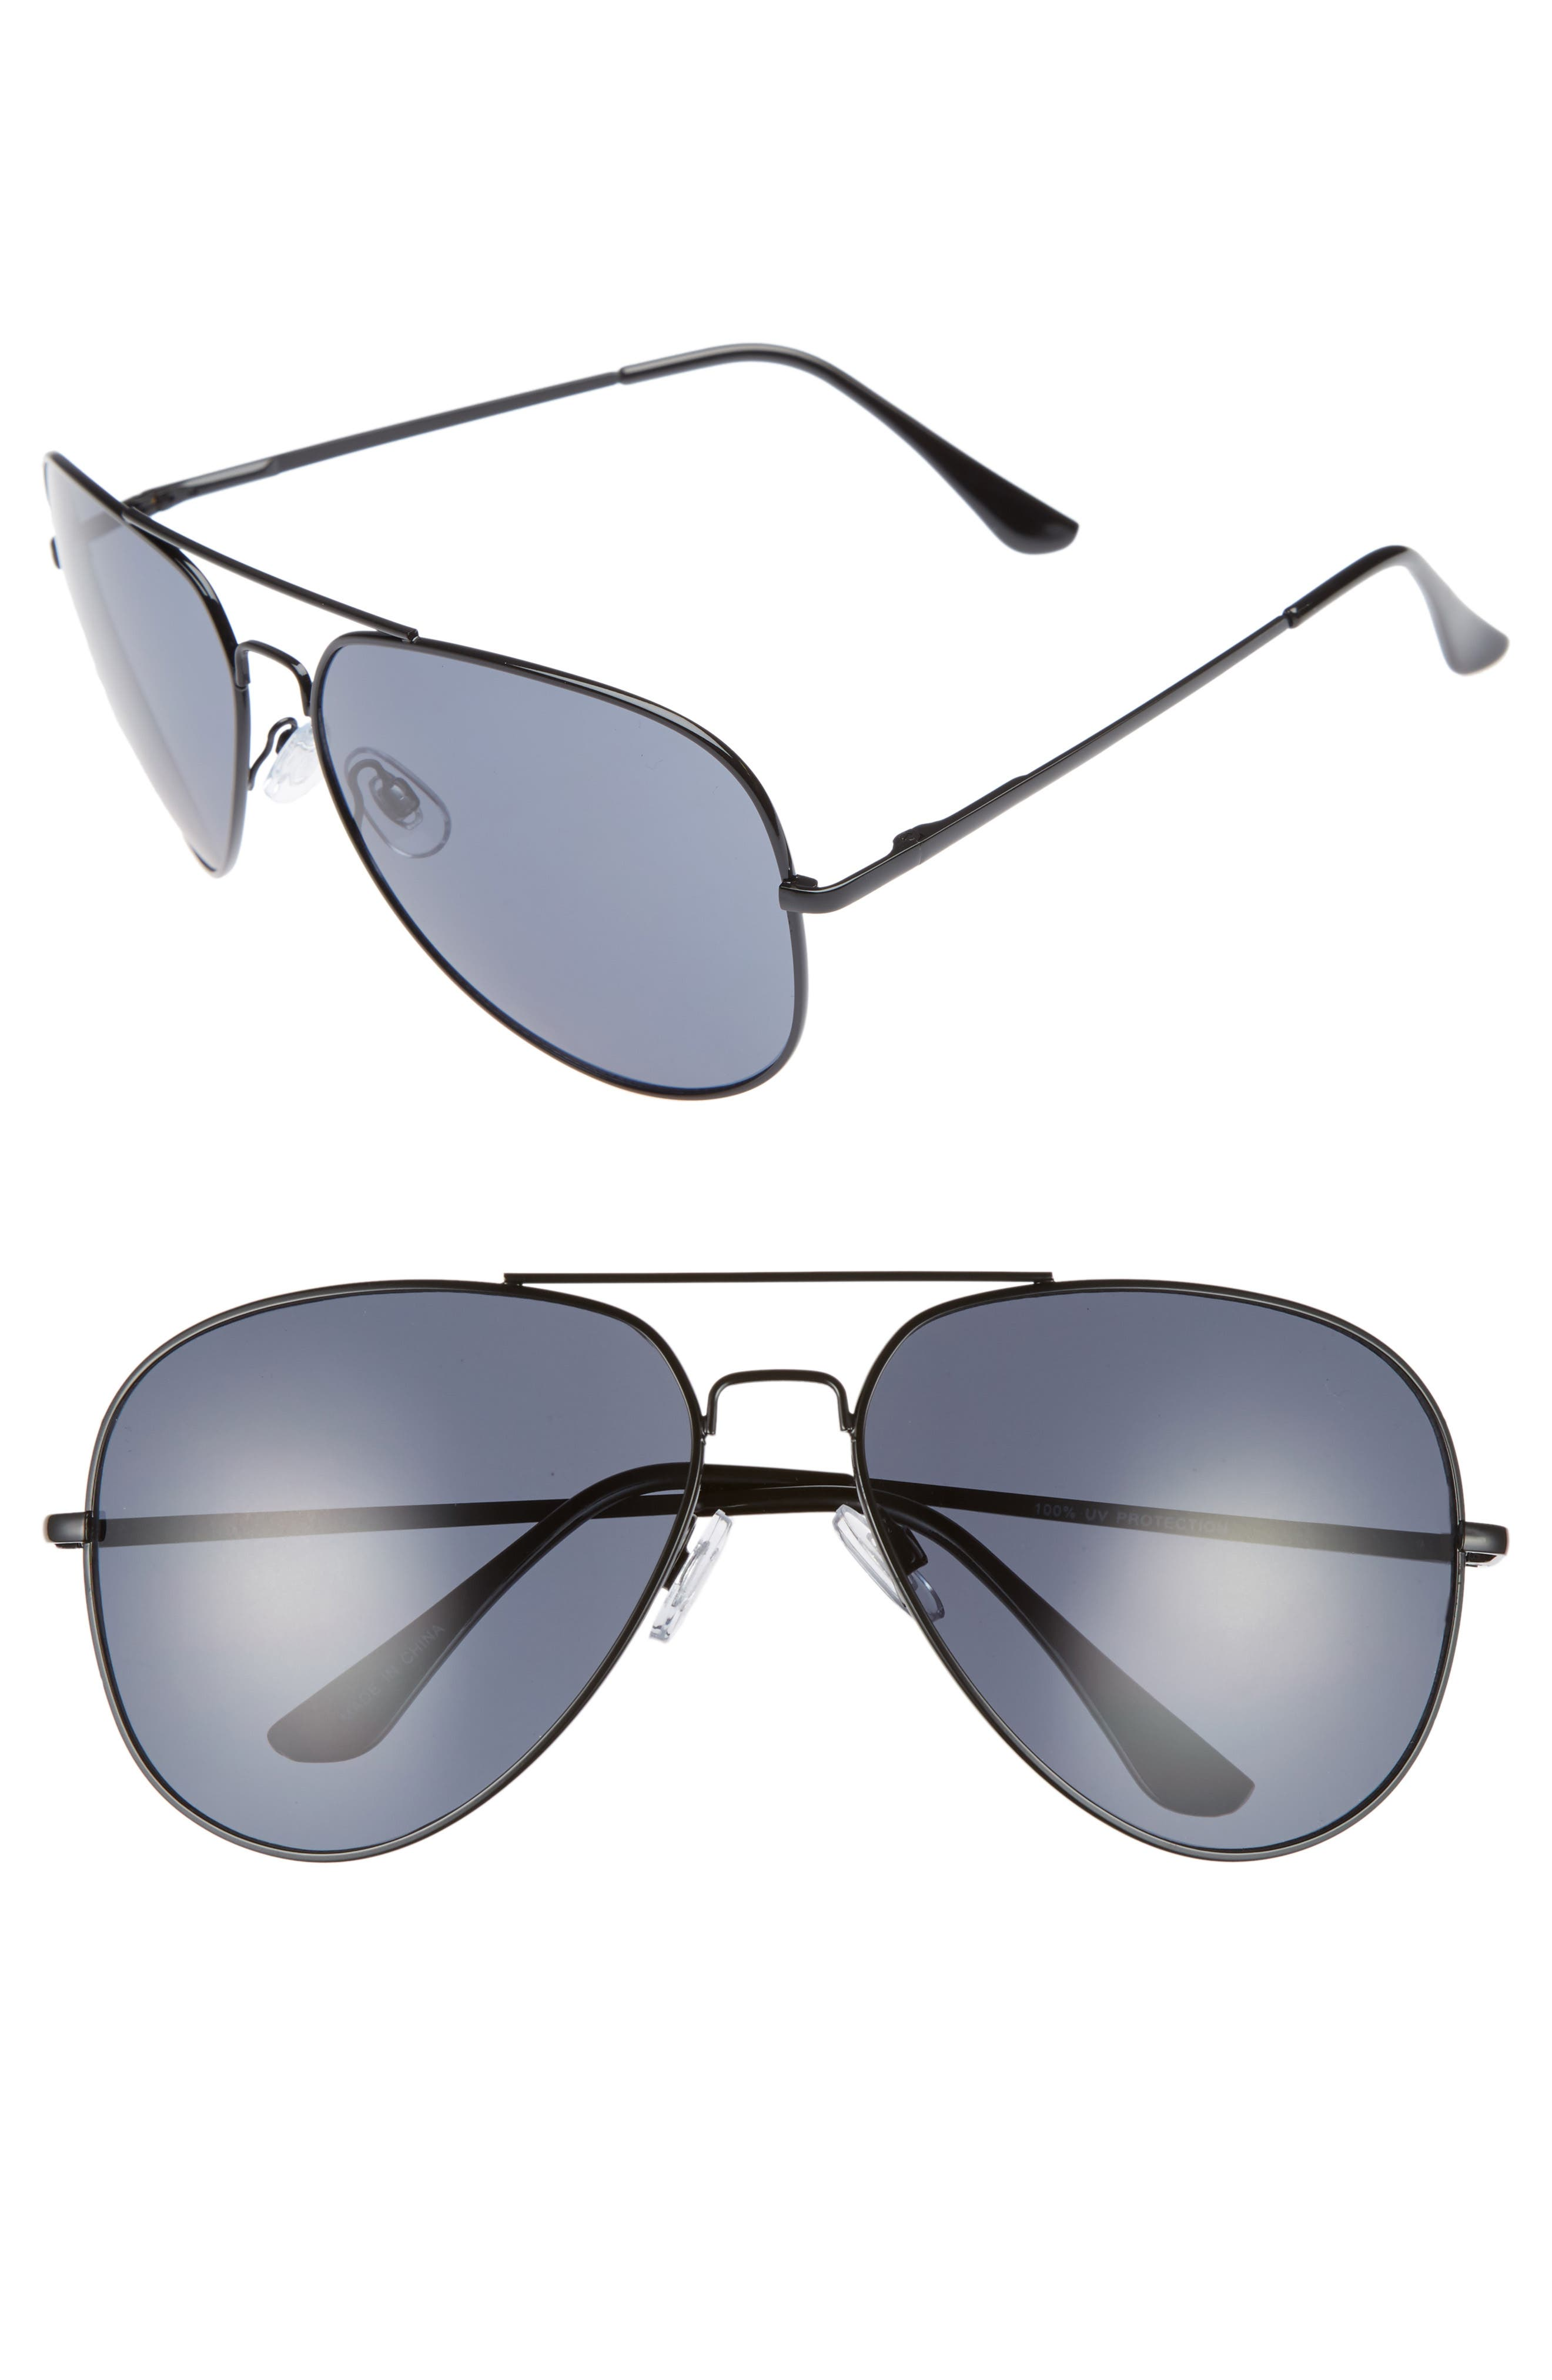 60mm Large Aviator Sunglasses,                             Main thumbnail 1, color,                             001